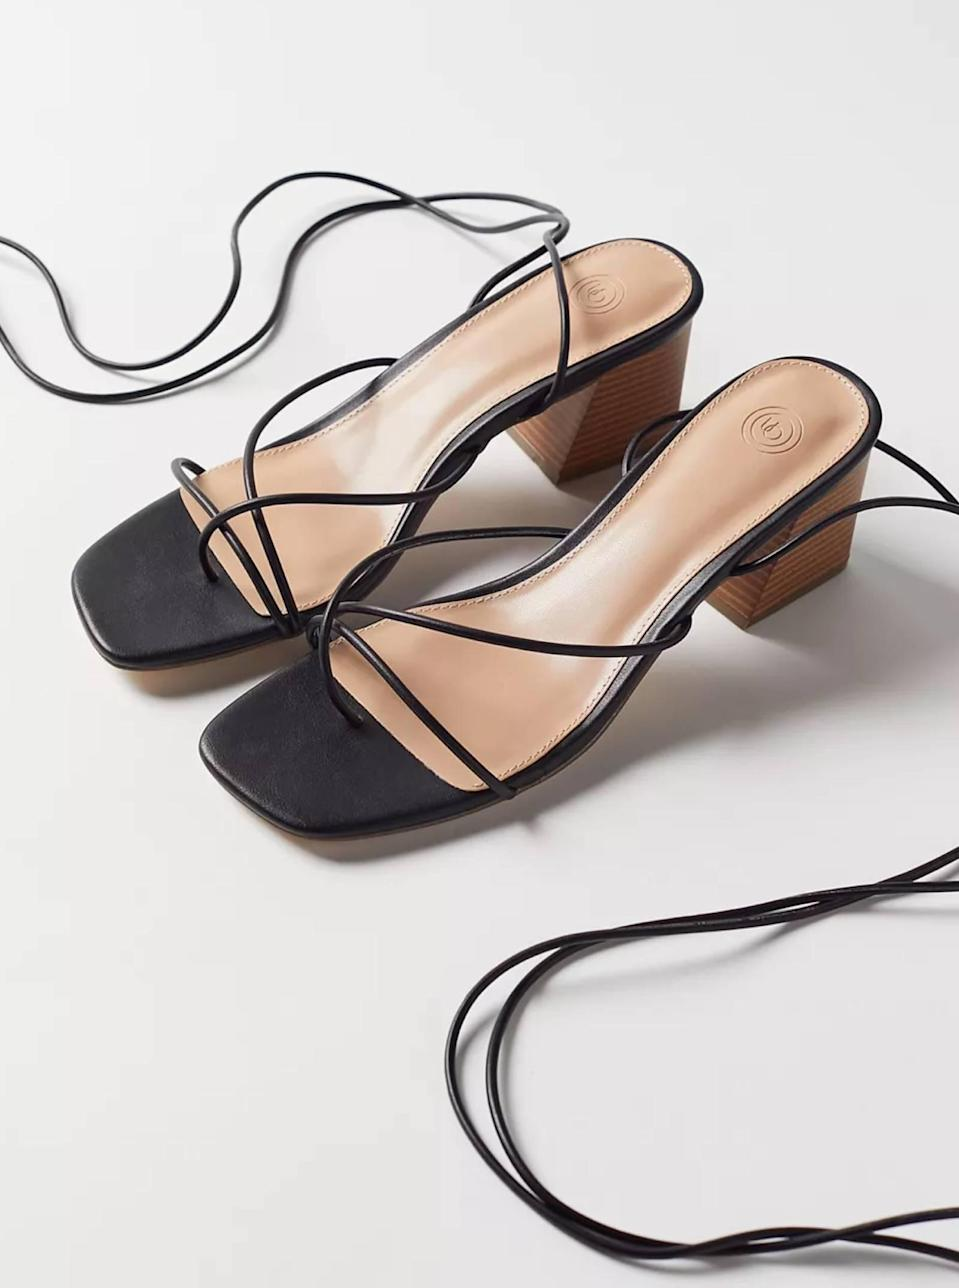 """$49, Urban Outfitters. <a href=""""https://www.urbanoutfitters.com/shop/uo-kendal-strappy-heeled-sandal?"""" rel=""""nofollow noopener"""" target=""""_blank"""" data-ylk=""""slk:Get it now!"""" class=""""link rapid-noclick-resp"""">Get it now!</a>"""